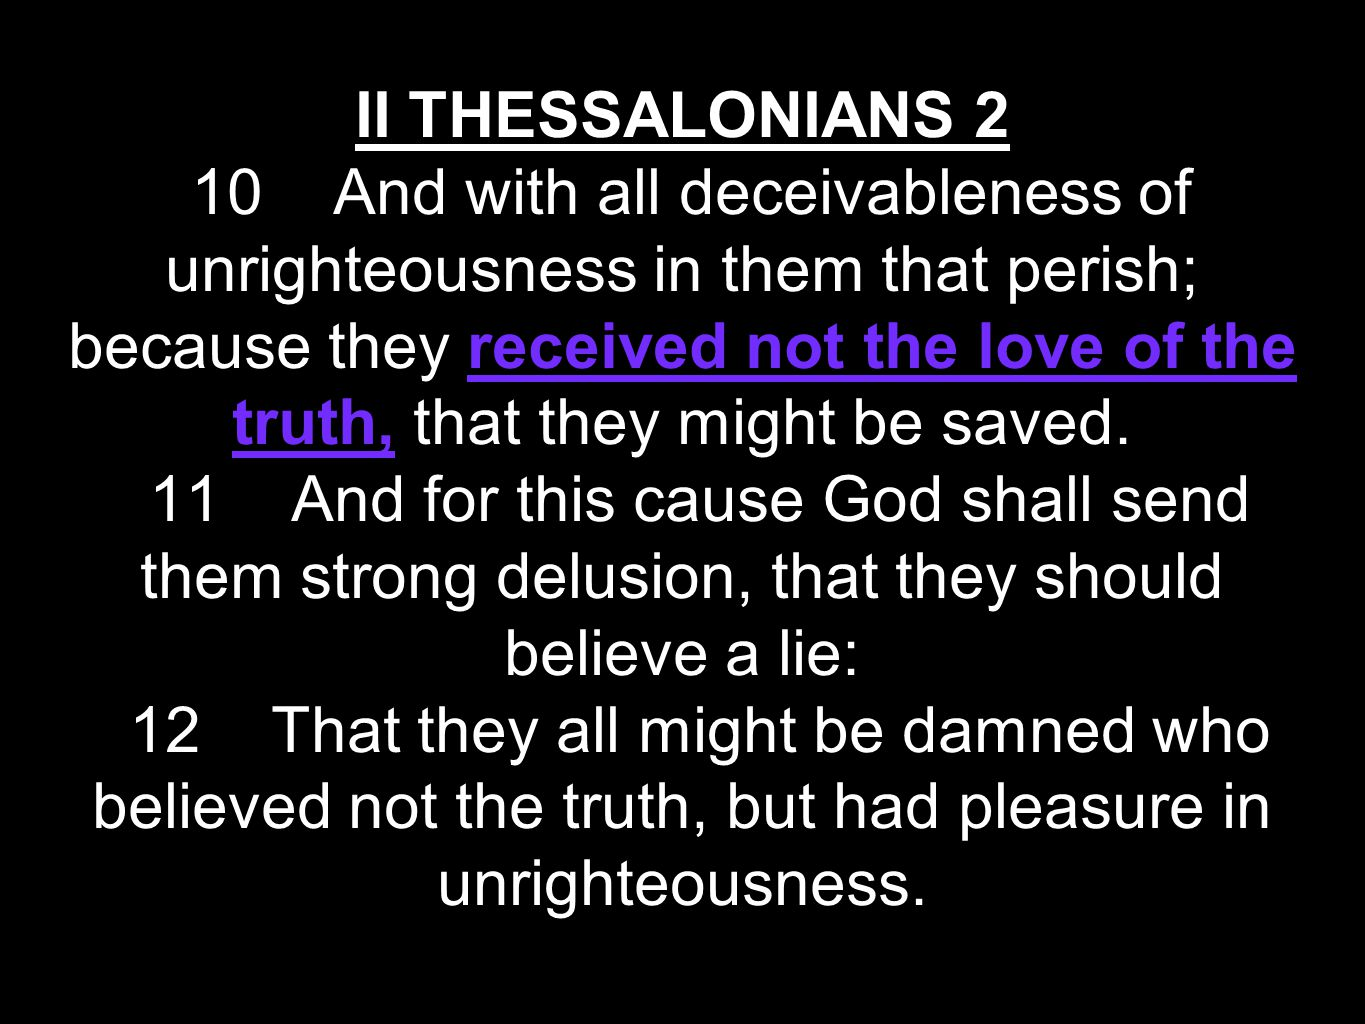 II THESSALONIANS 2 10 And with all deceivableness of unrighteousness in them that perish; because they received not the love of the truth, that they might be saved.